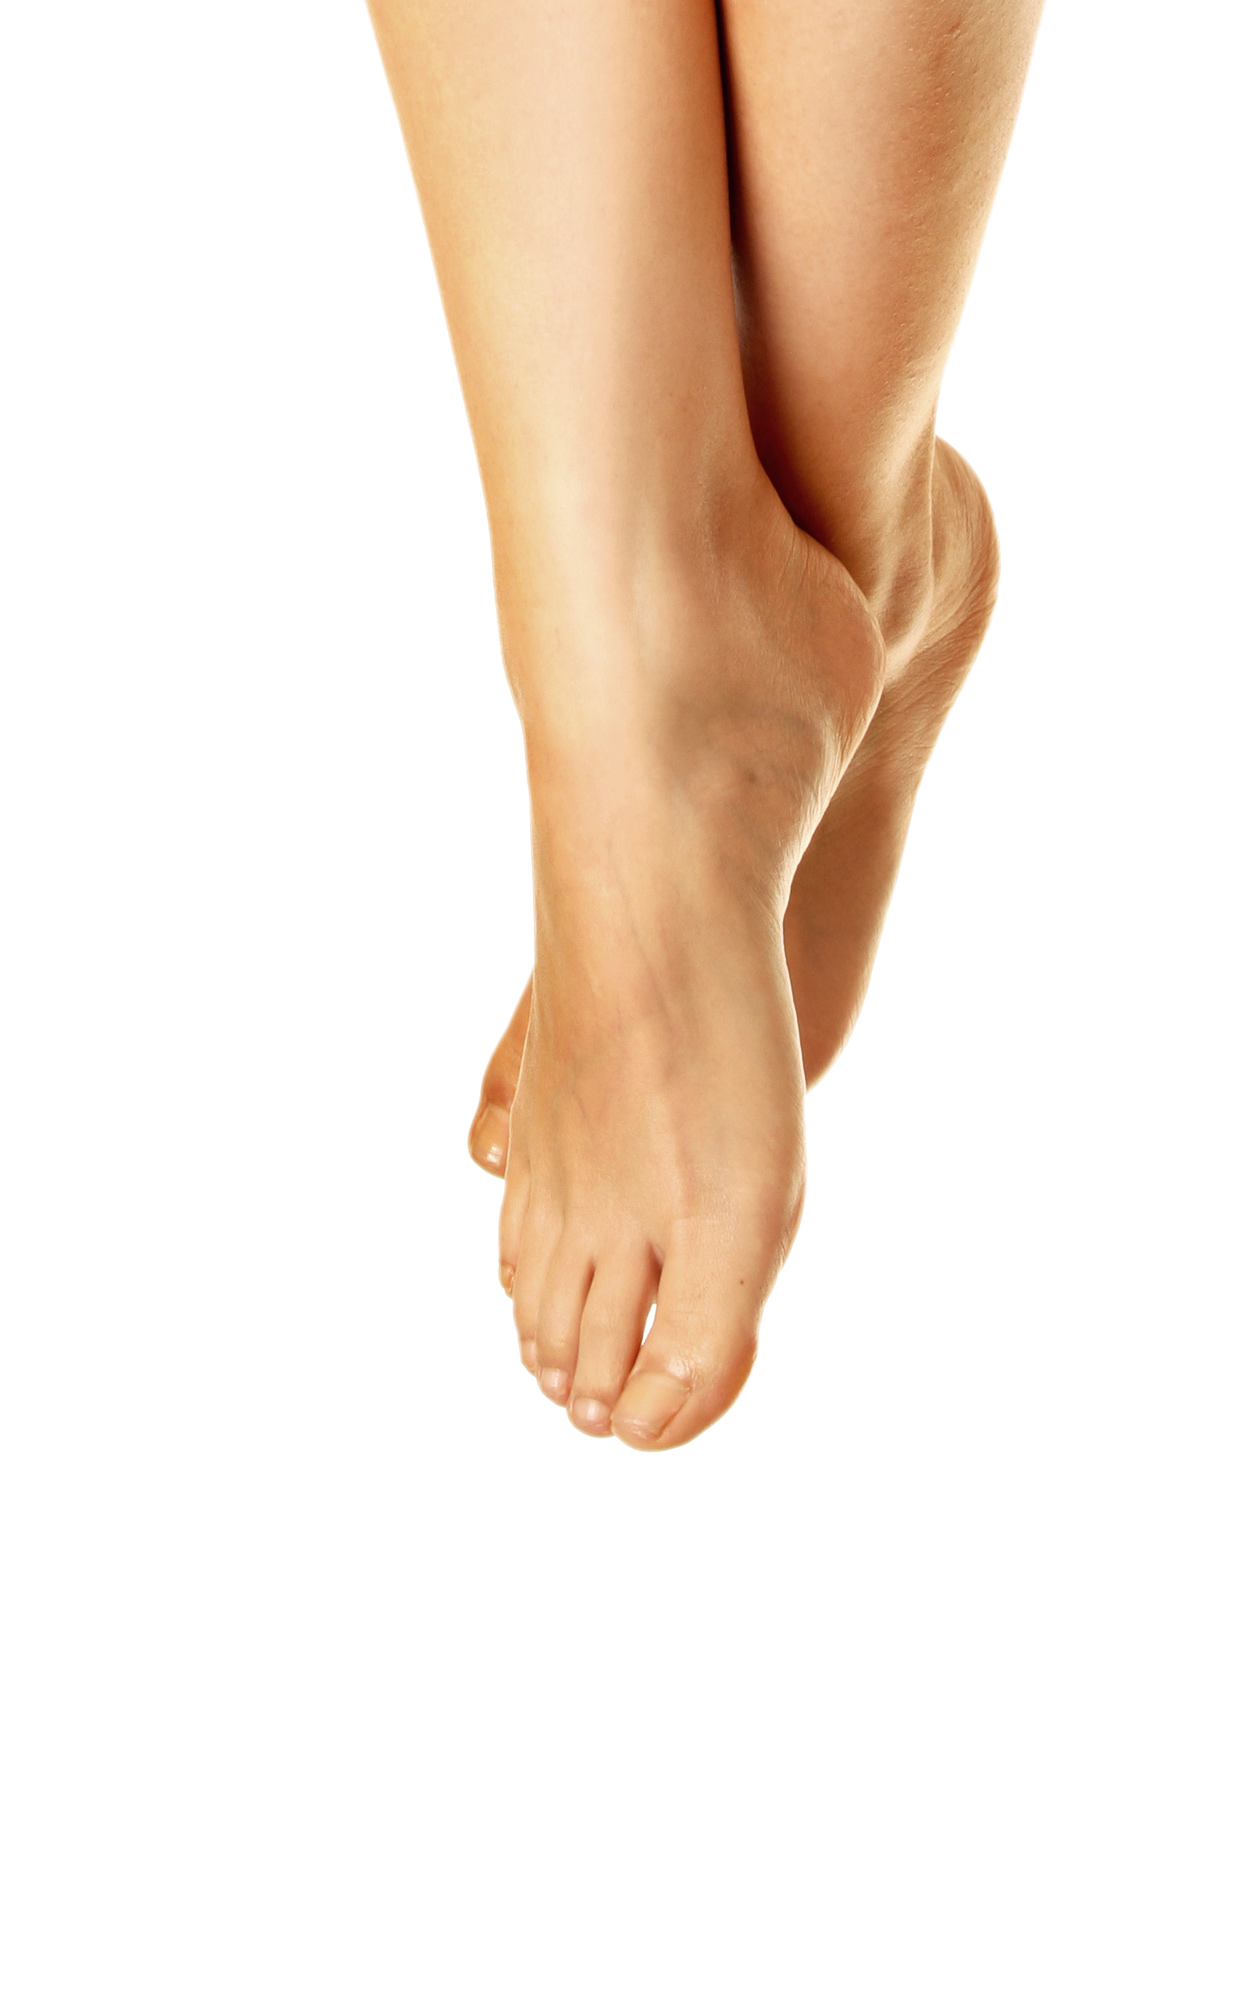 Women png image purepng. Legs clipart ankle joint